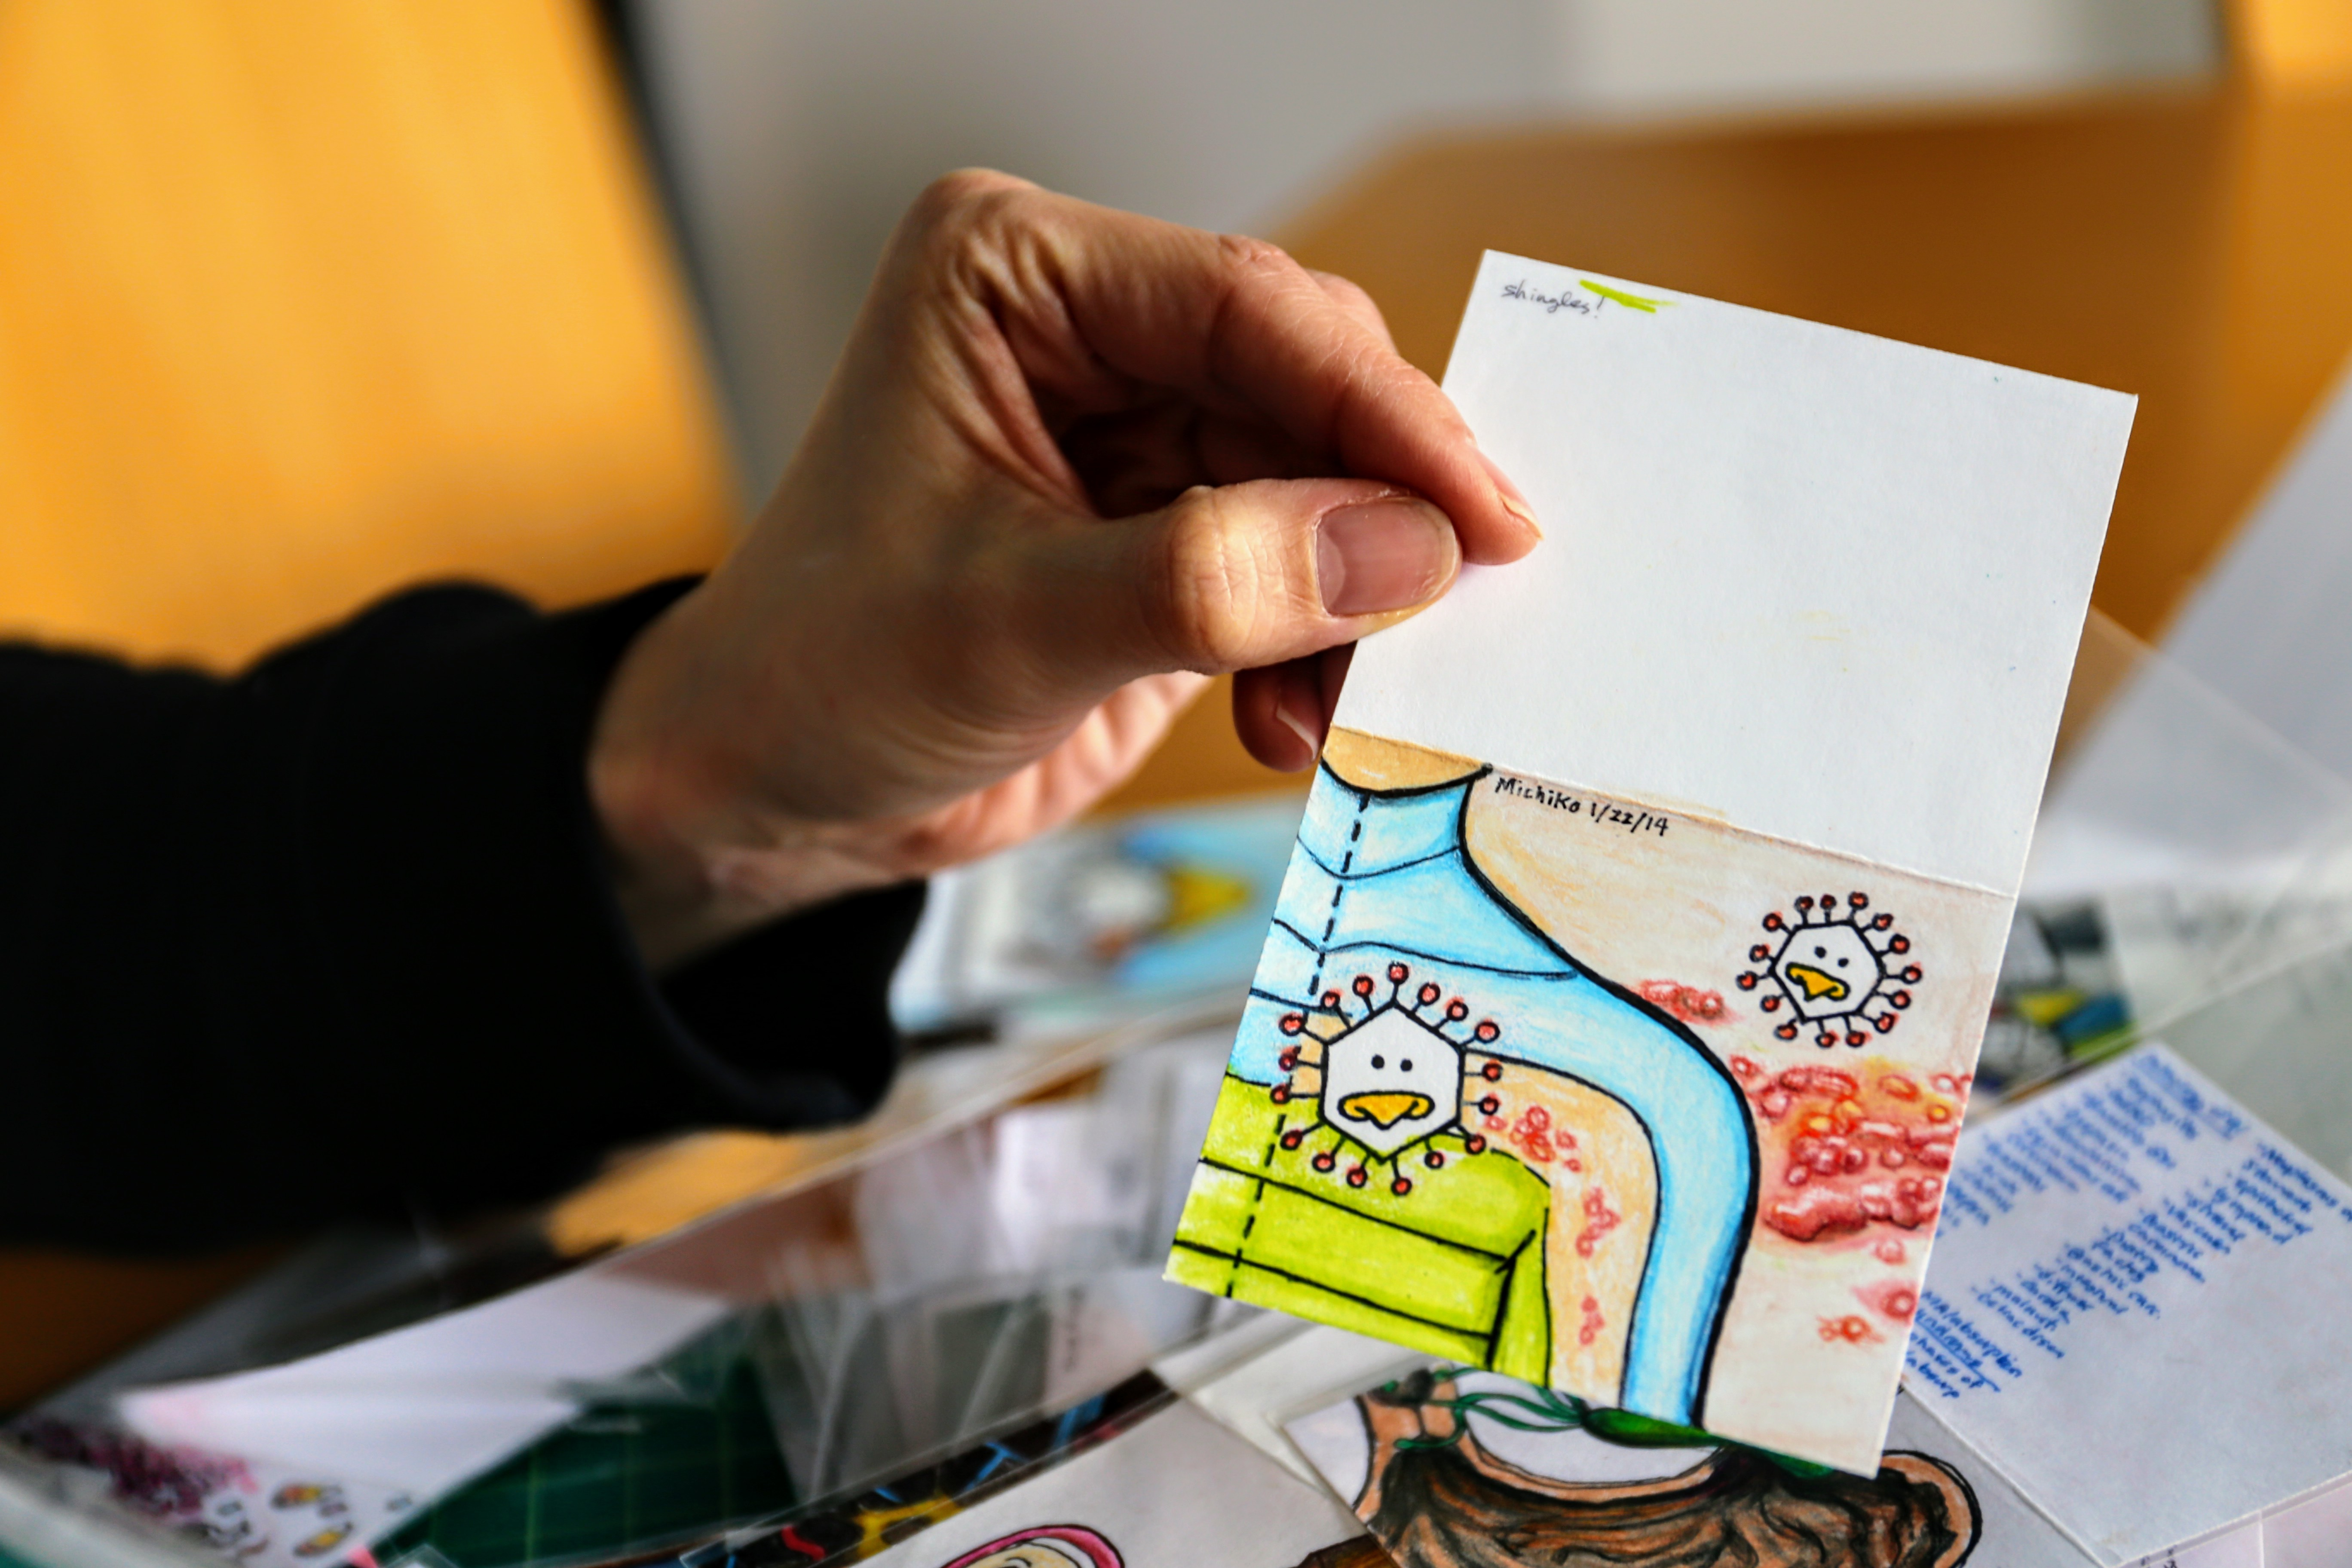 Maruyama uses medical doodles to promote art and medicine. (Emily Rendell-Watson/CBC)